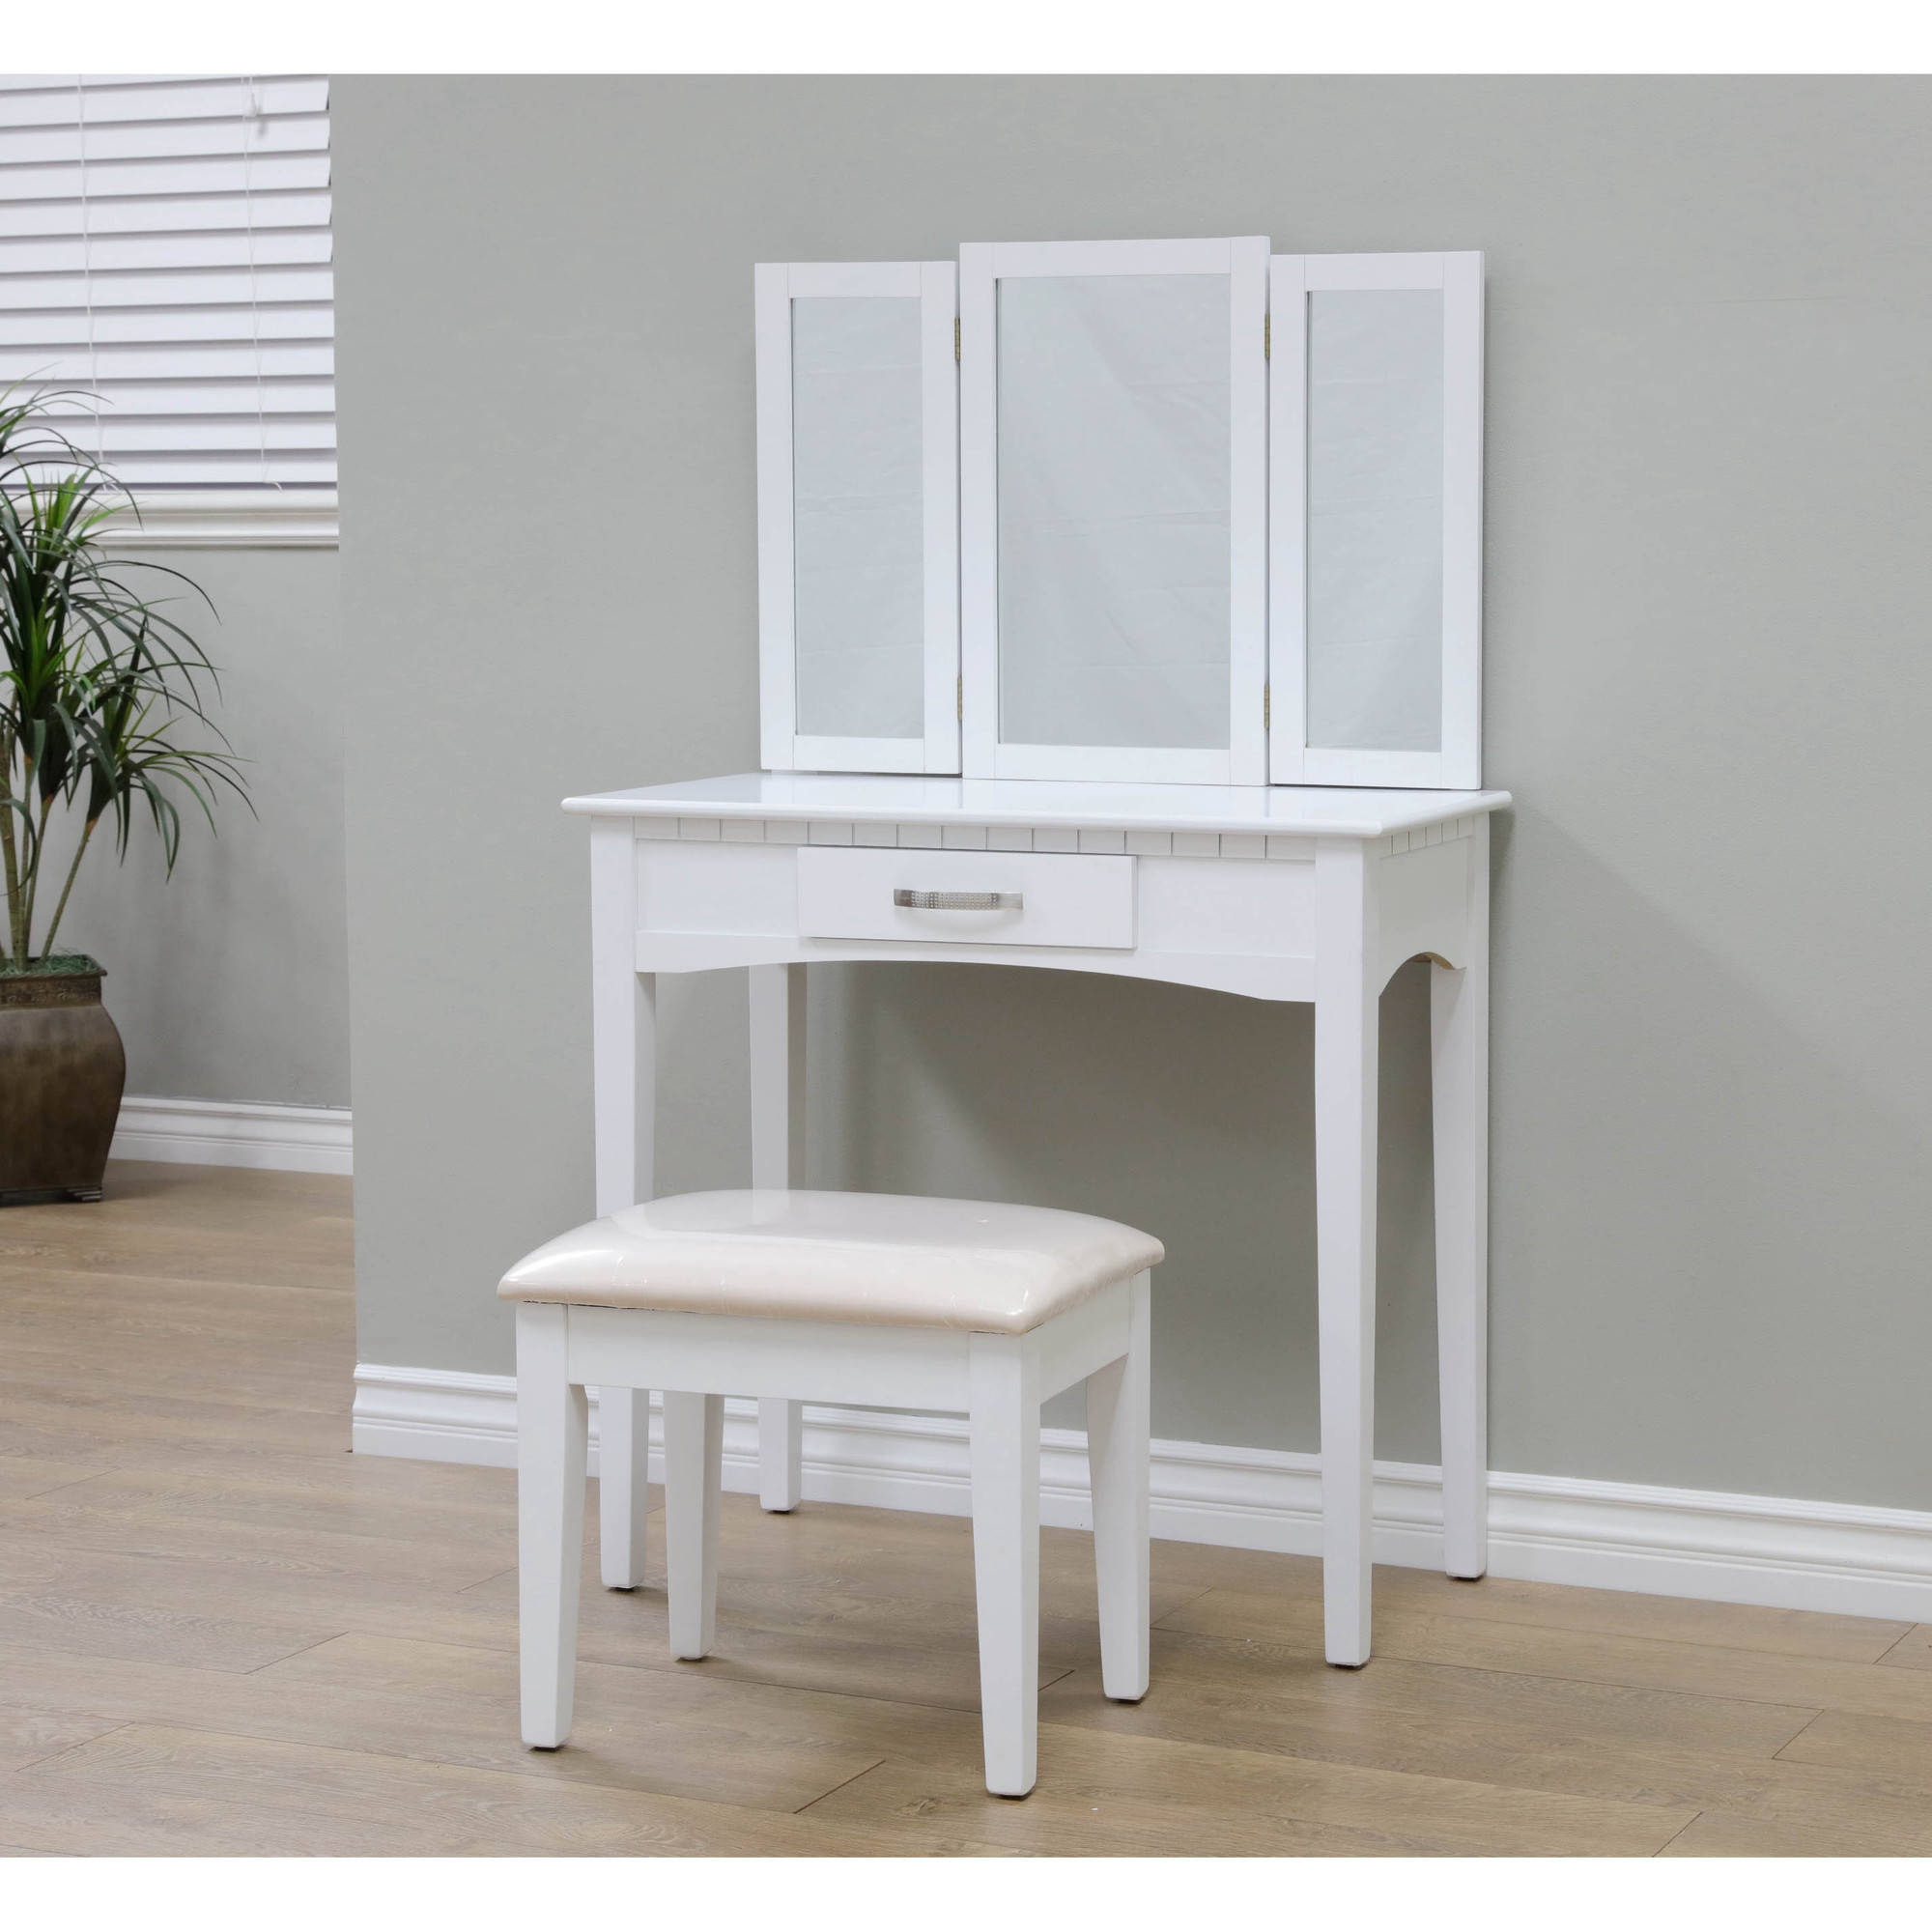 mirror fancy bedroom modern decorate small table wood dressing storage desk as ivory with for lights also your shelves set source well and vanity to makeup furniture oak stained